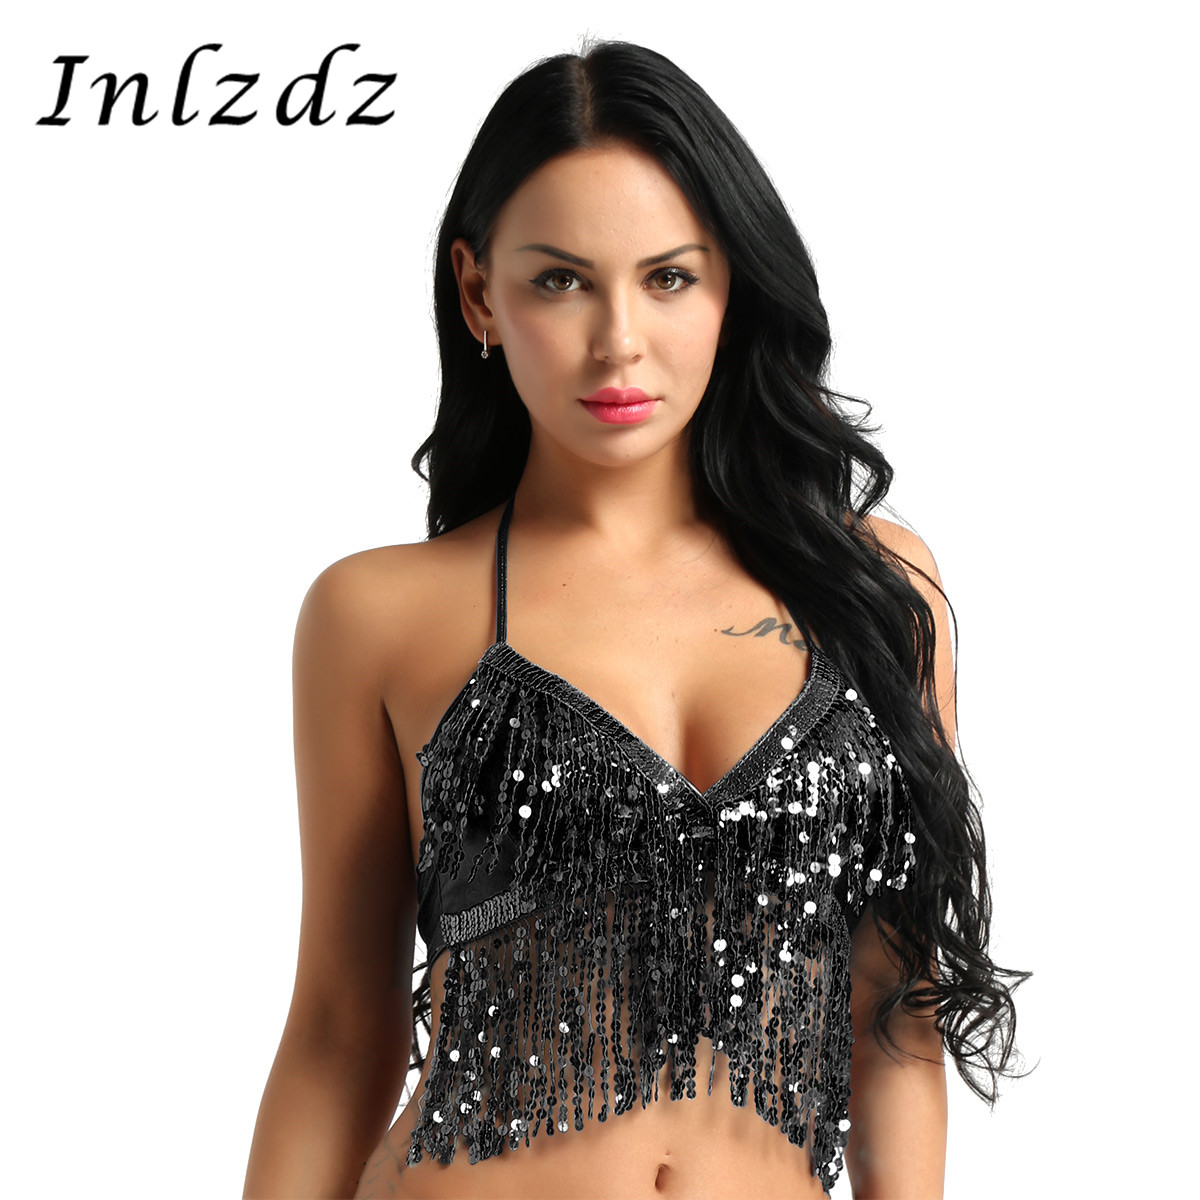 Women Pole Dance Rave Crop Top Wet Look Halter Neck And Back Tie Up Latin Belly Dance Bra Top With Sequins Tassel Rave Clothes